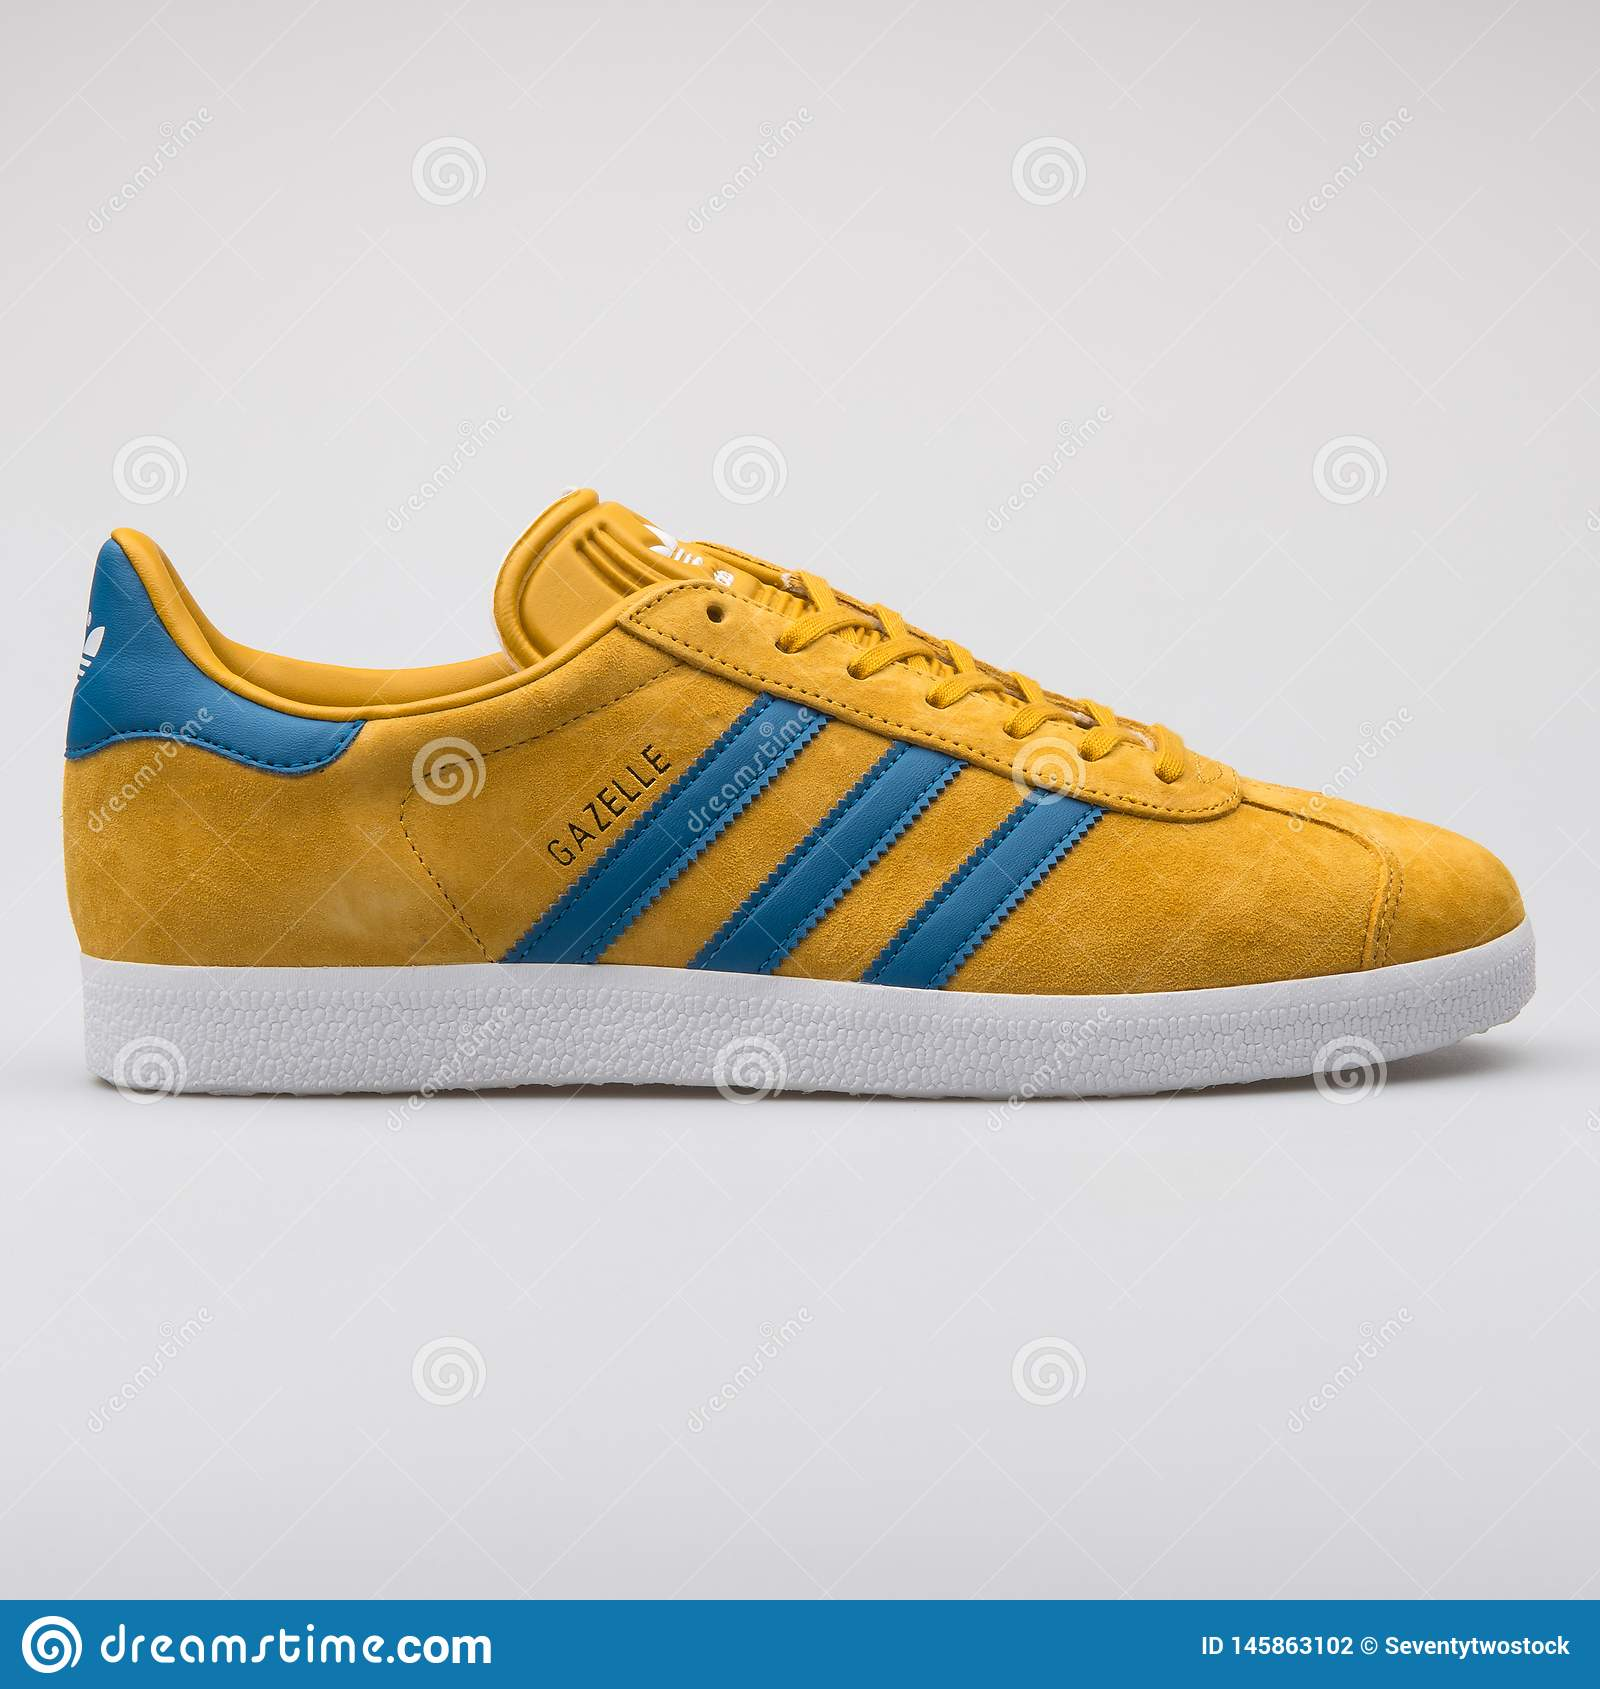 Adidas Gazelle Yellow And Blue Sneaker Editorial Photography ...